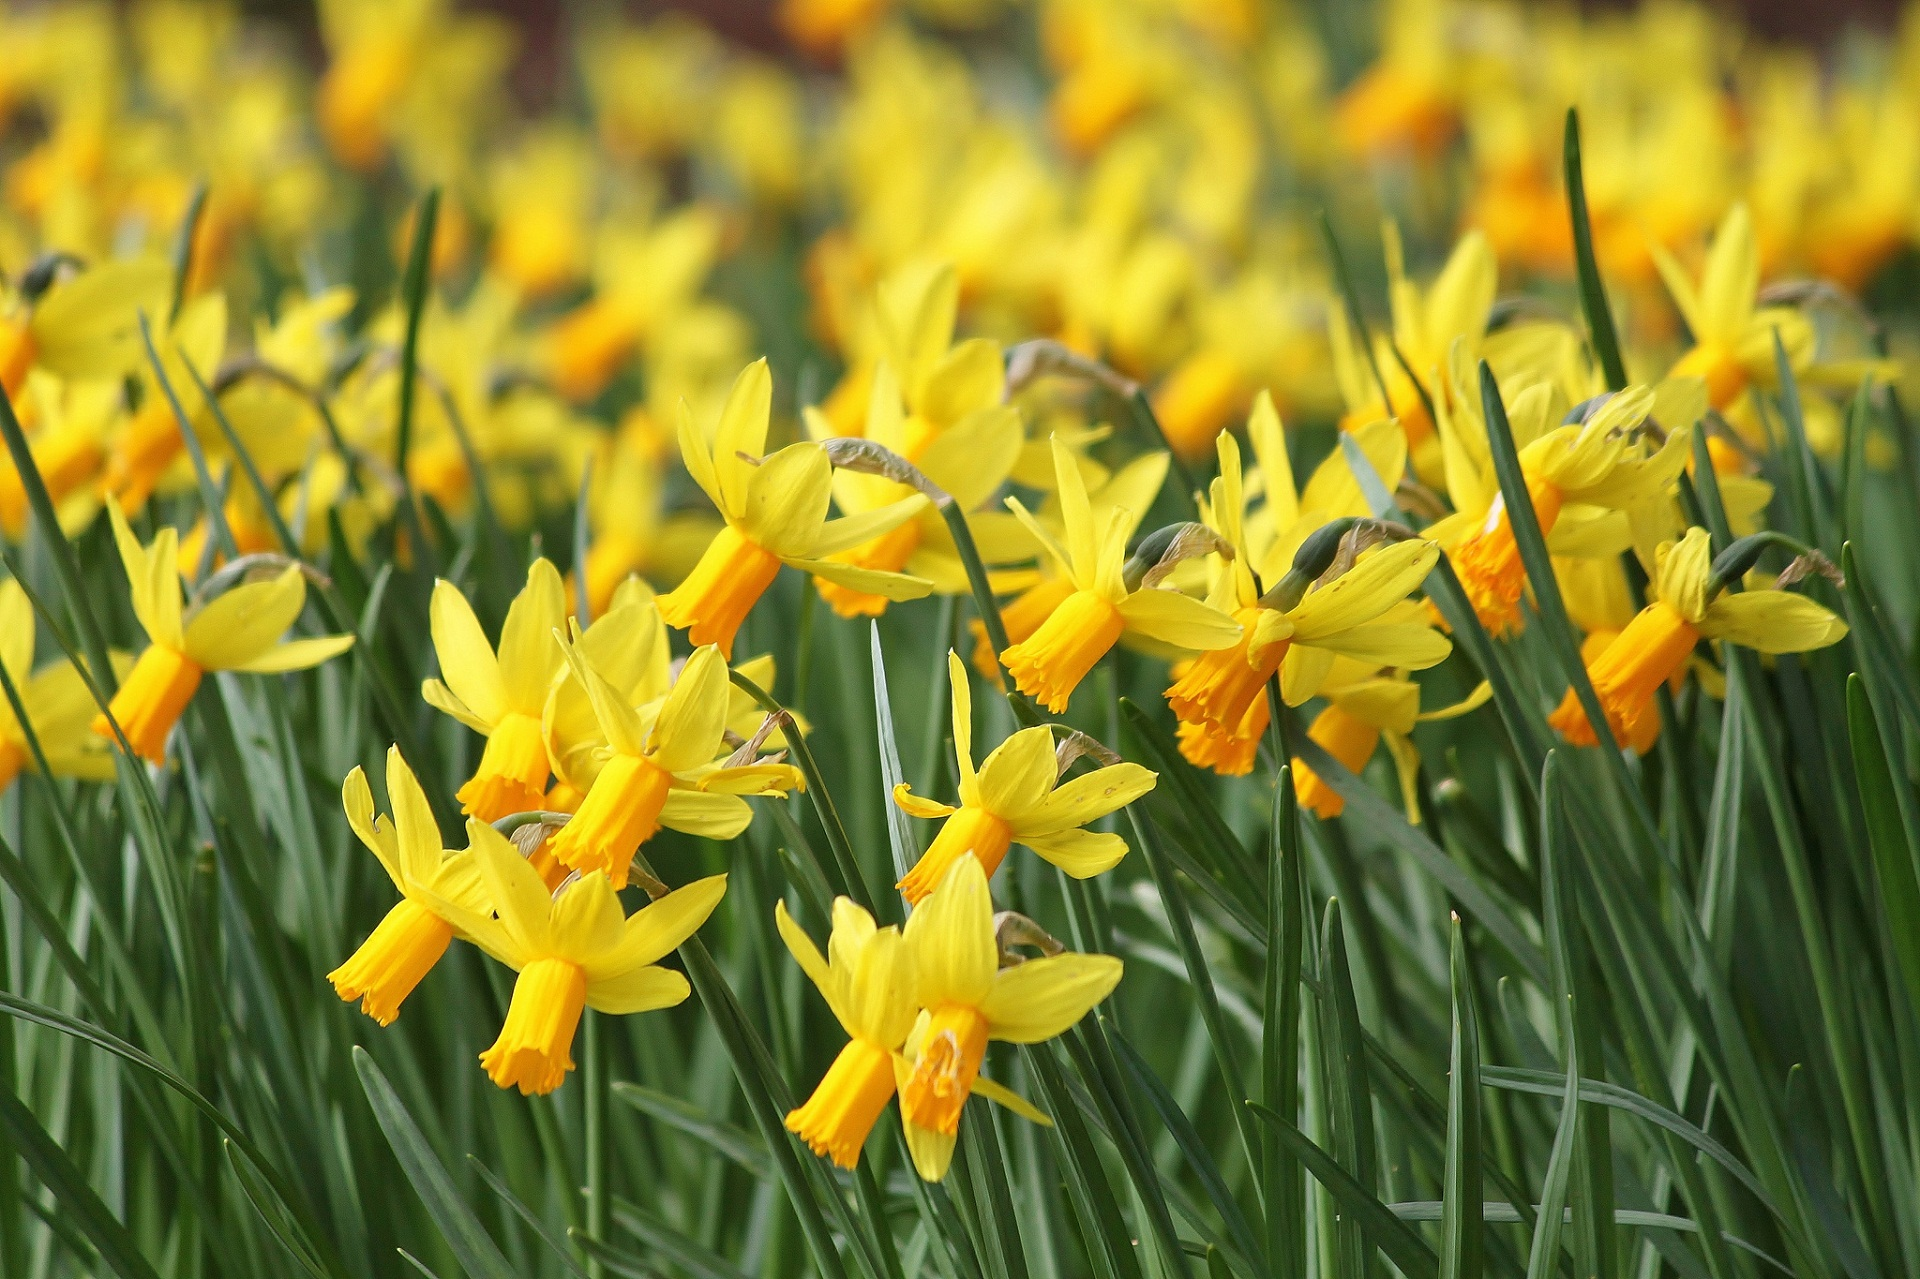 Wallpapers of Pretty Daffodil HD, 0.79 Mb, Mia Cammack